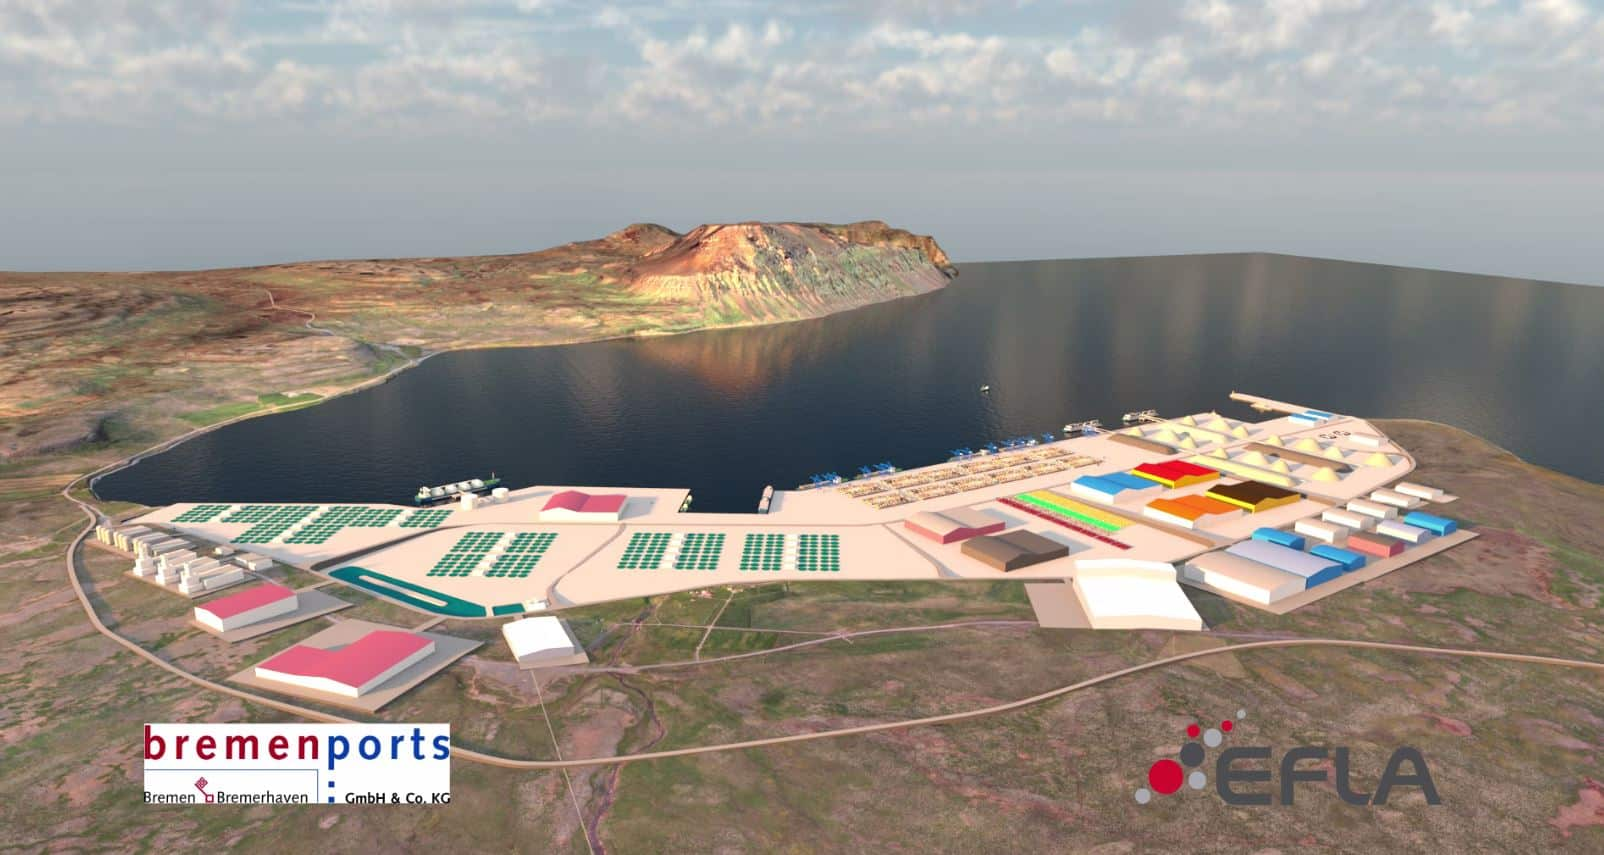 bremenports to develop Icelandic port catering to Arctic shipping route